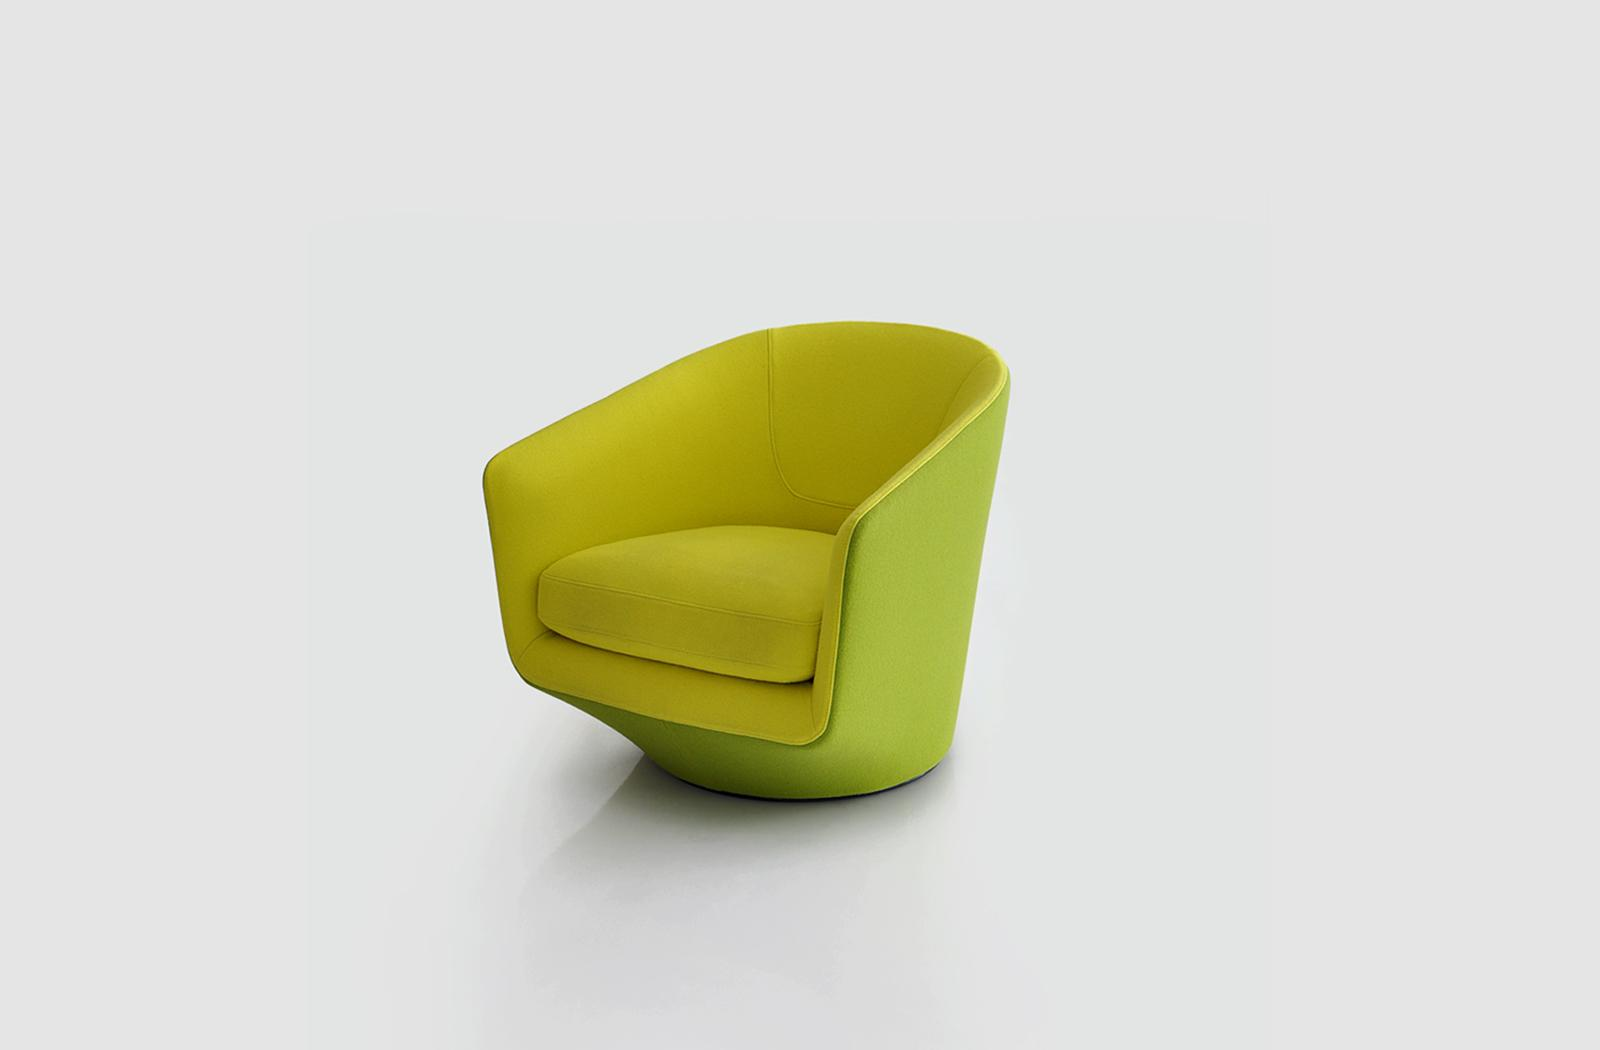 Uturn Chair